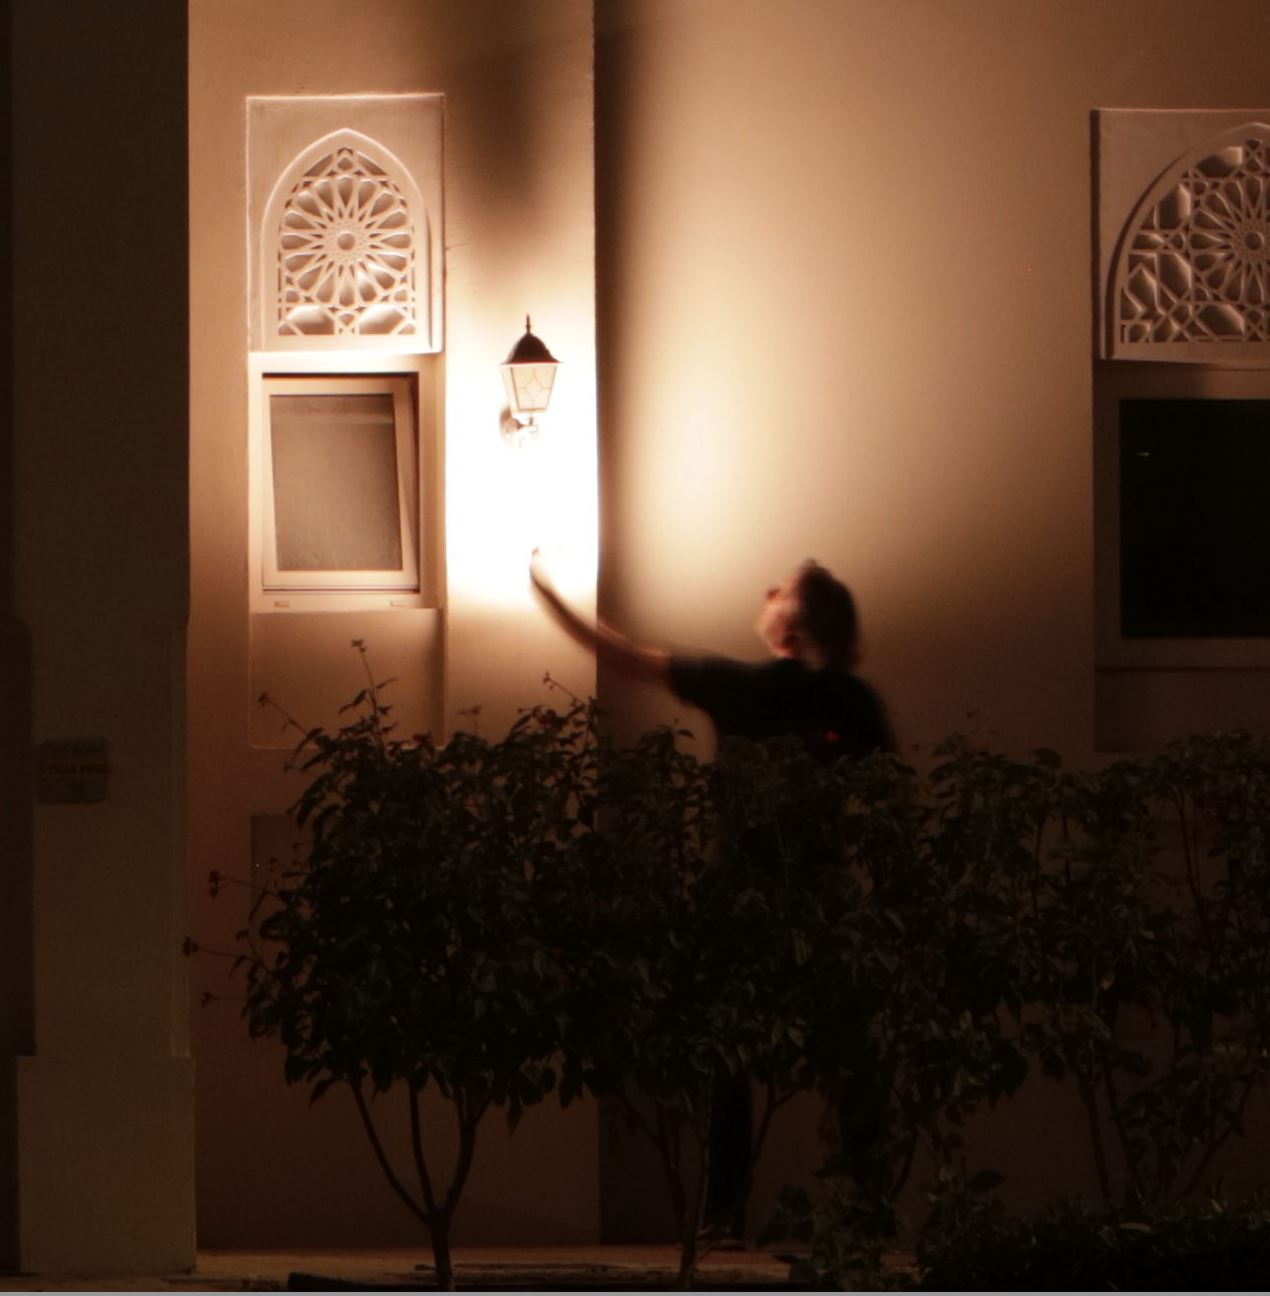 Light painting - behind the scene